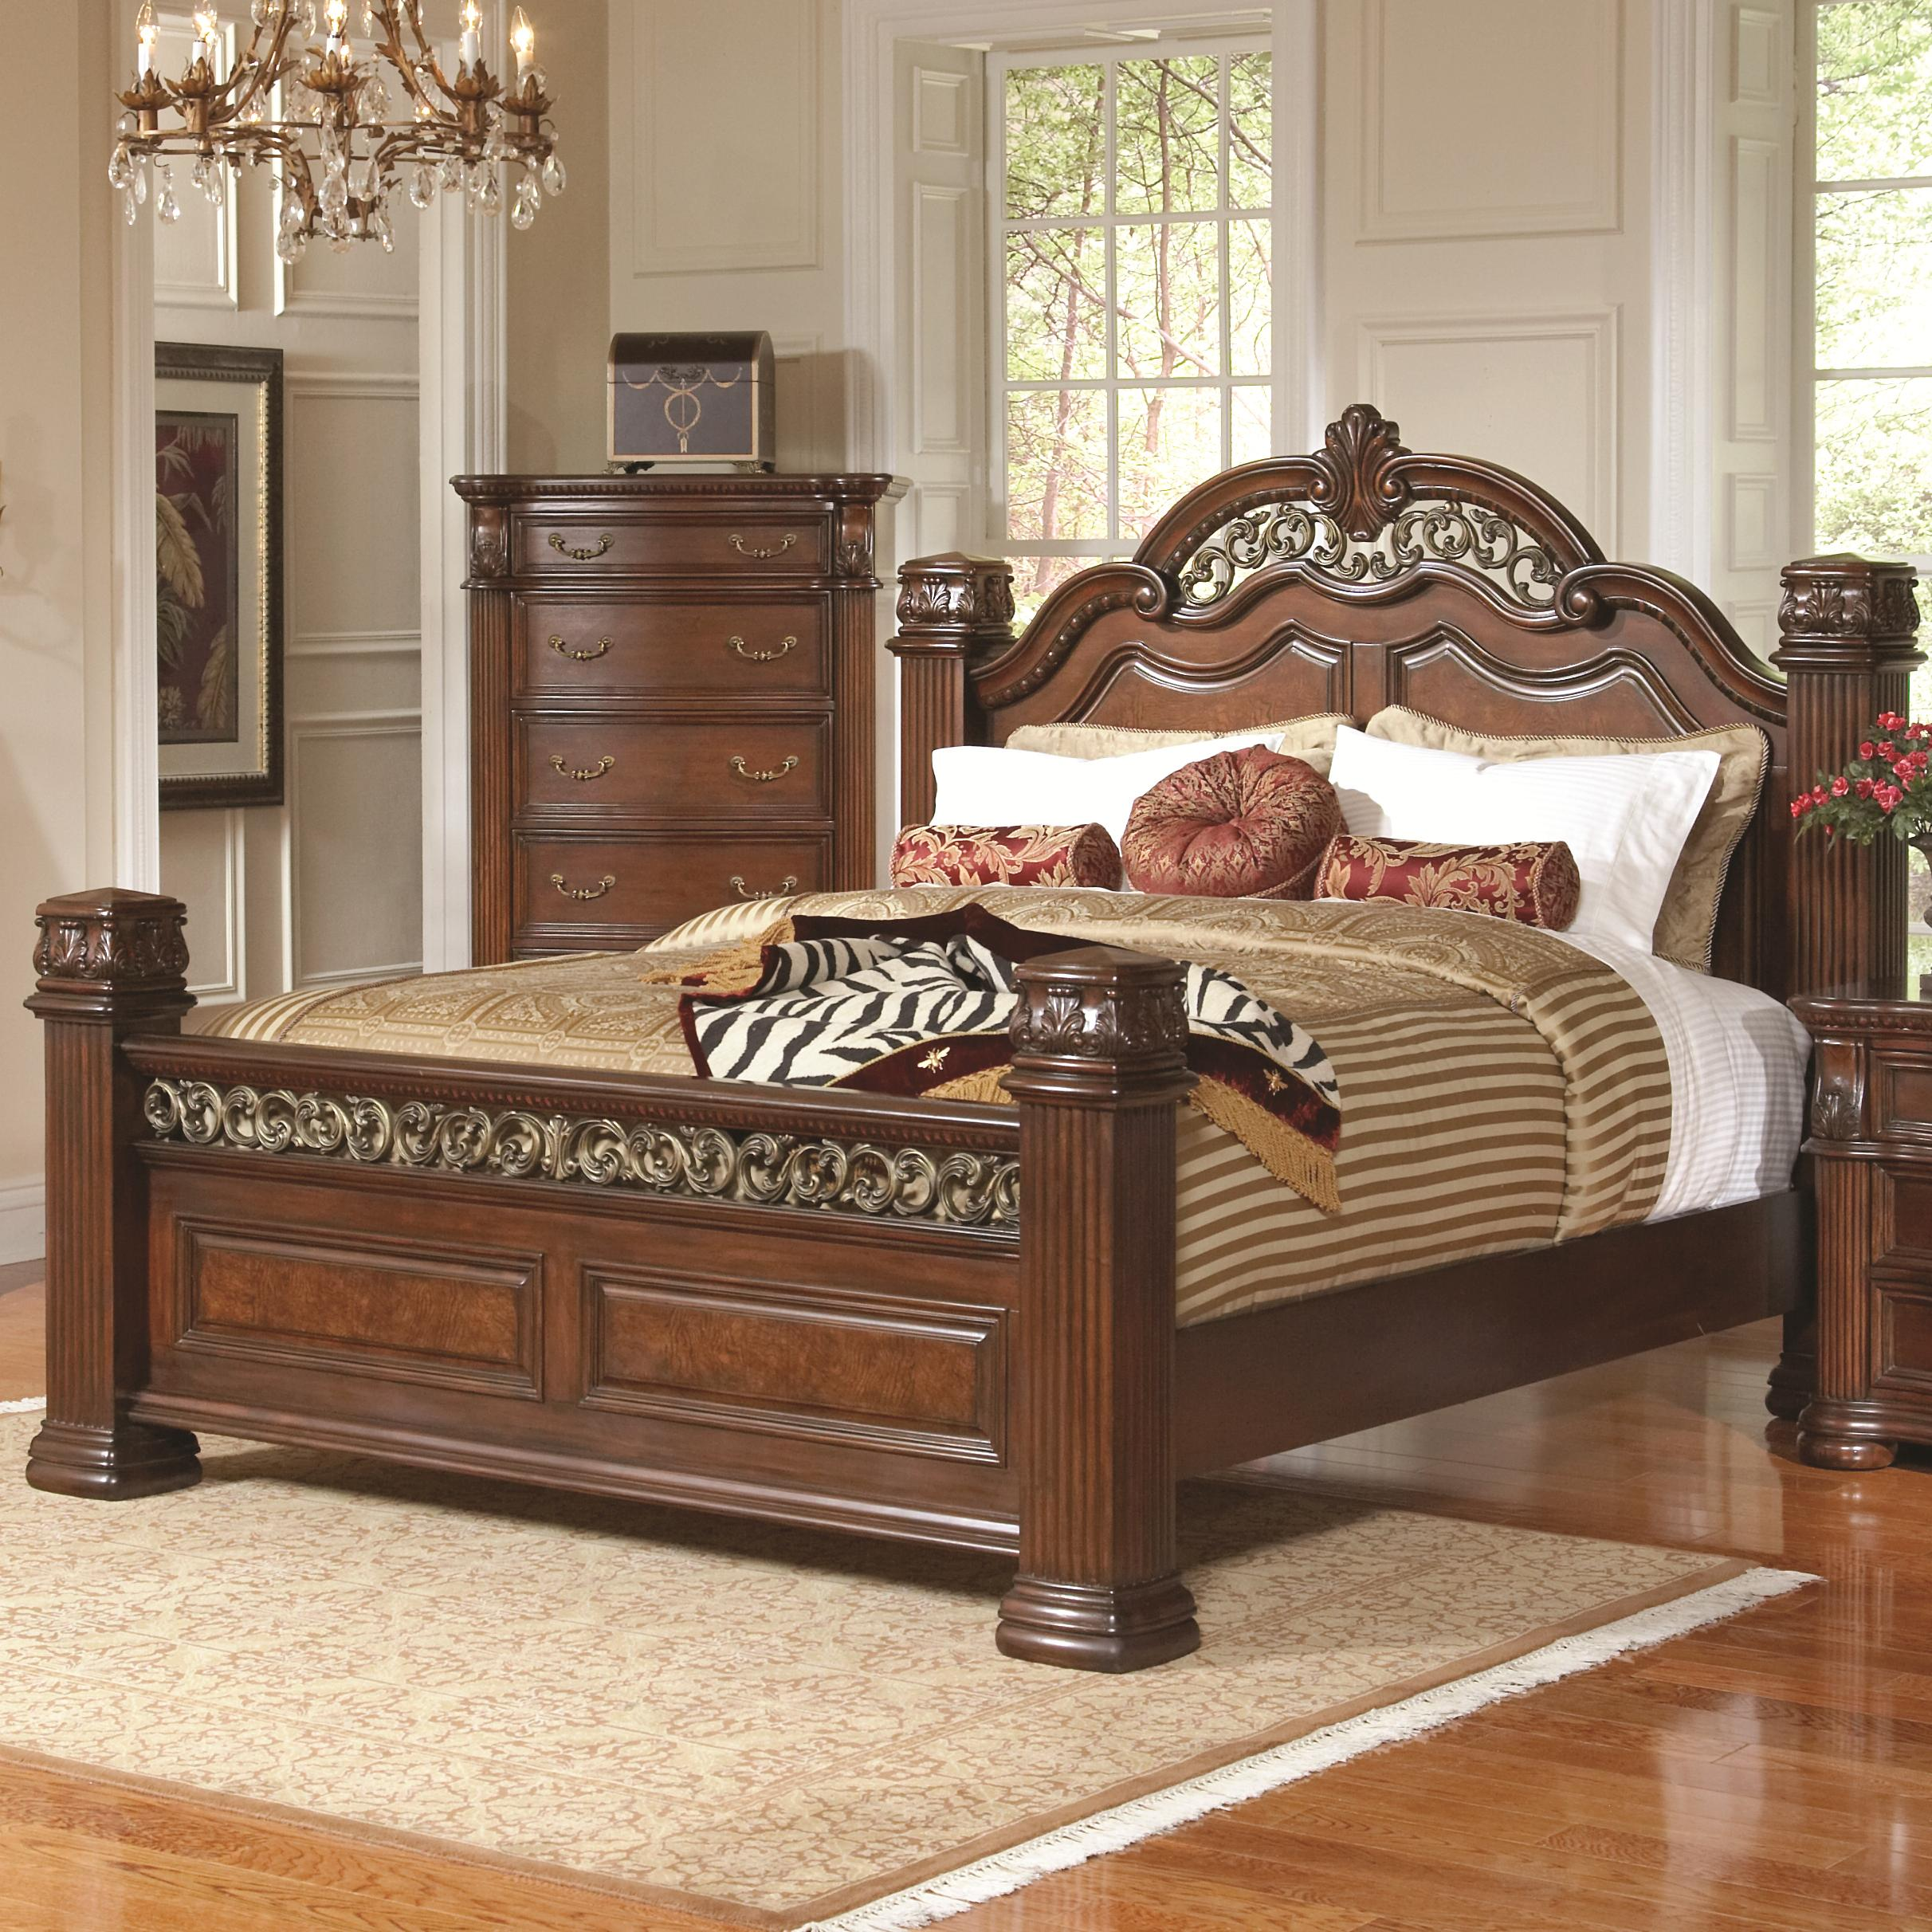 comparing leather beds with wooden beds by homearena SHKXCBA